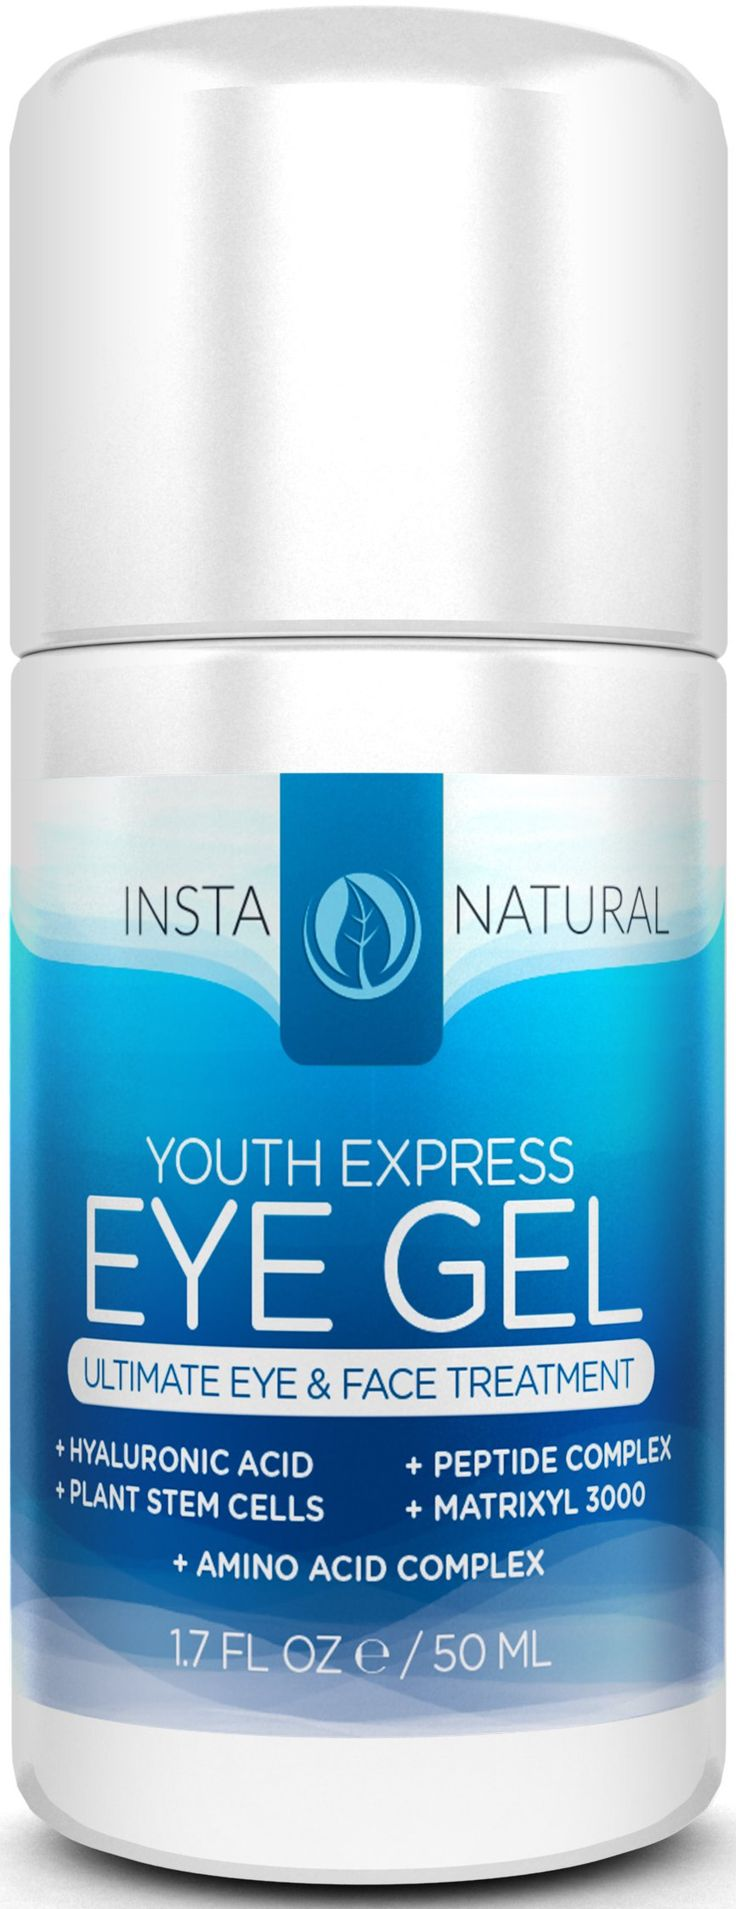 InstaNatural THE BEST Eye Cream For Dark Circles, Puffiness, Wrinkles & Bags - Best Under Eye Gel For Eye Bags, Crows Feet and Fine Lines -All Natural- 1.7 Ounces